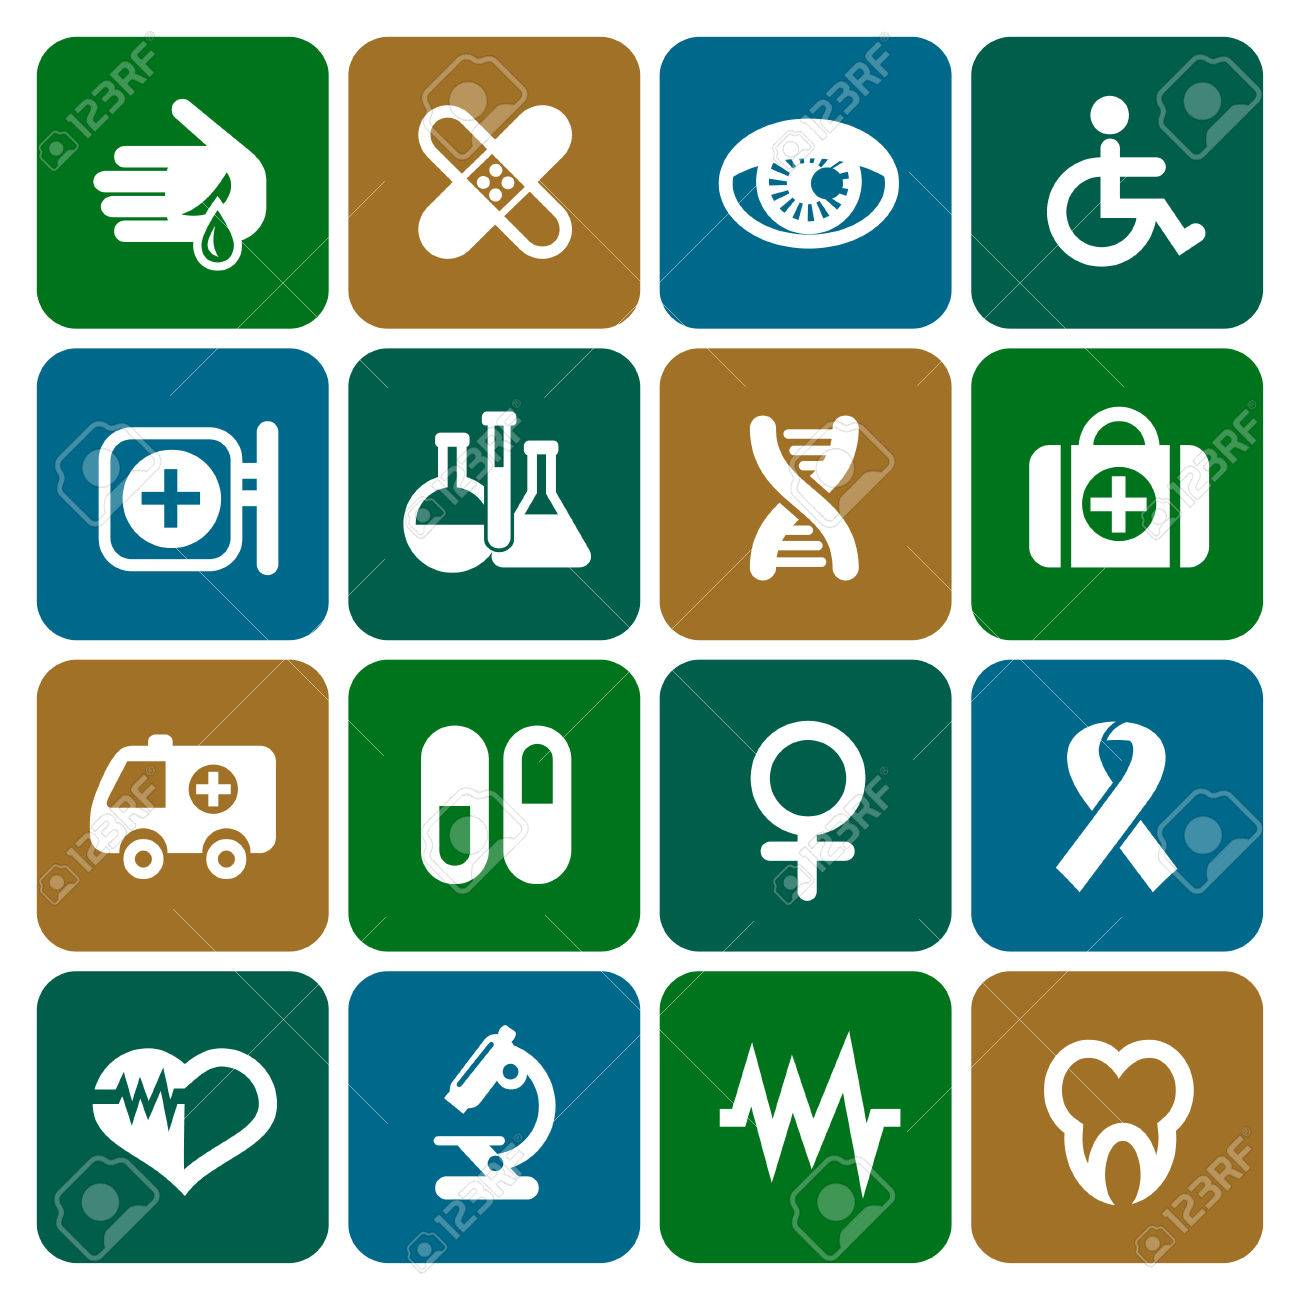 Set of medical icons in flat design, vector illustration Stock Vector - 25125906